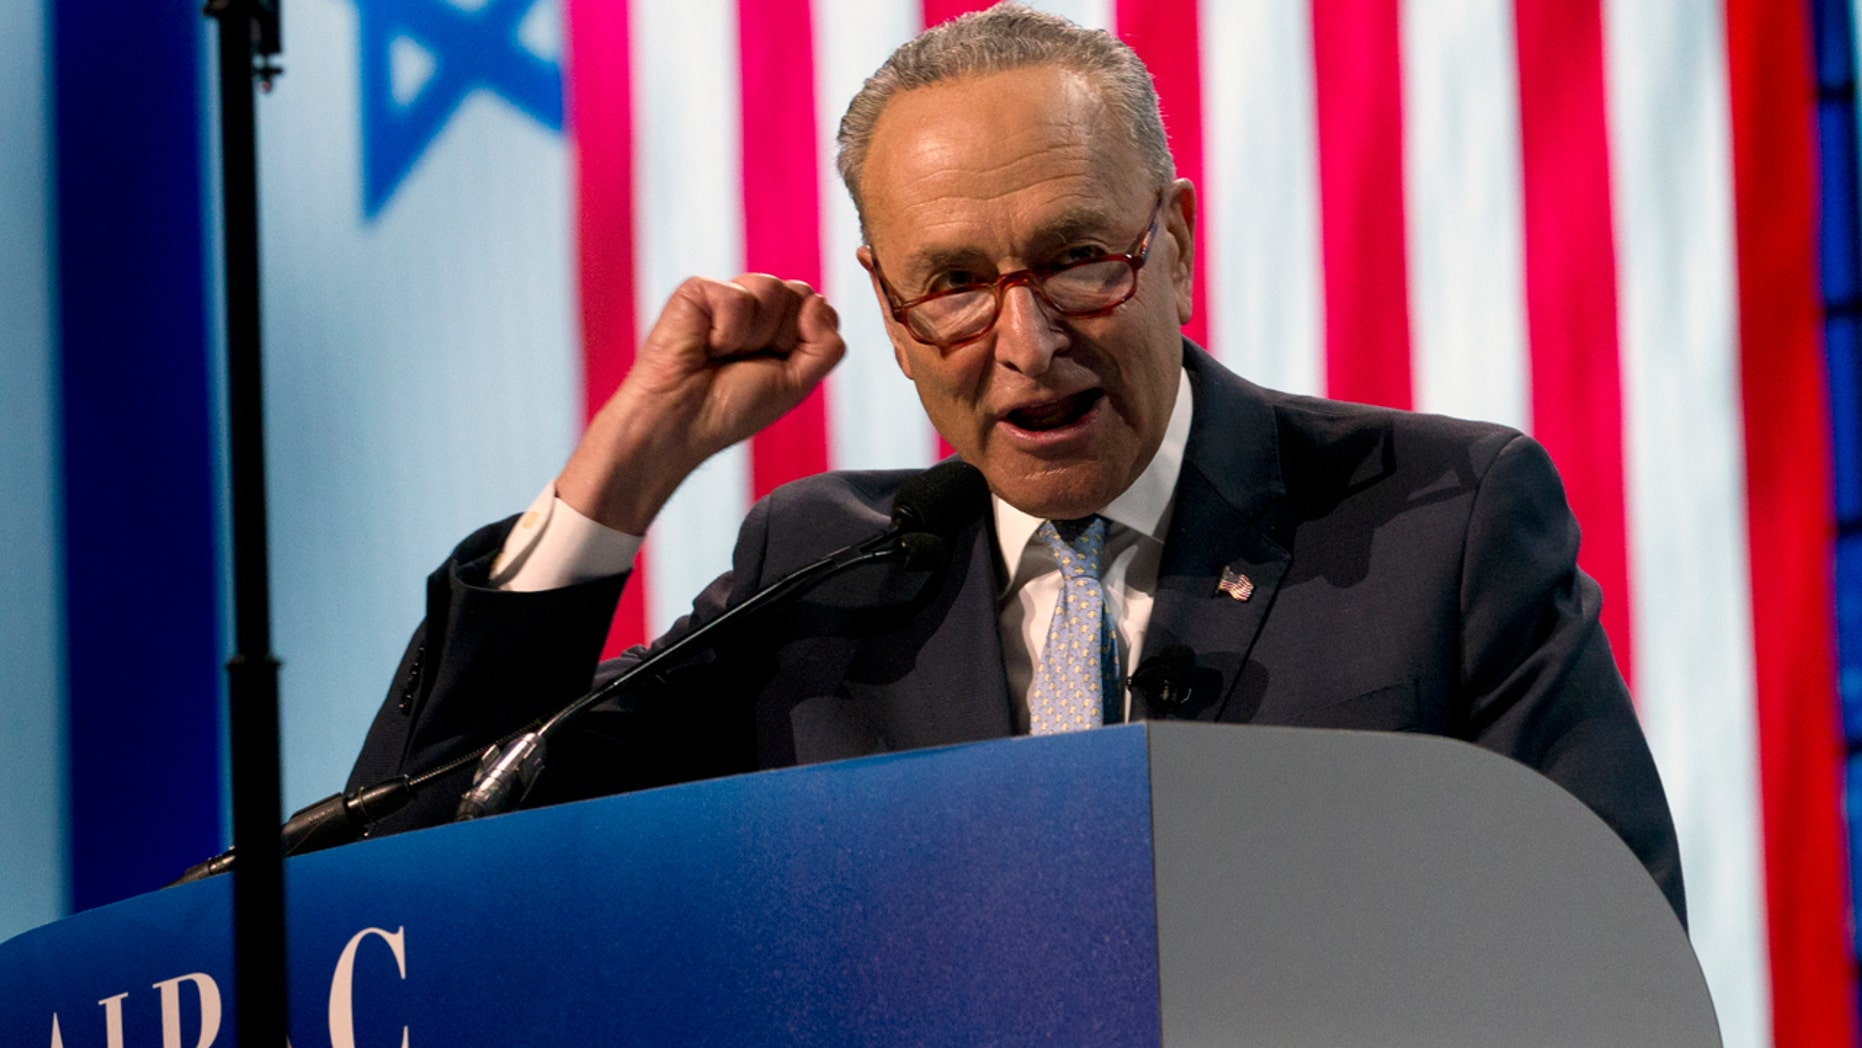 Senate Minority Leader Chuck Sumer, D-N.Y., who spoke at the AIPAC 2019 political conference in Washington on Monday night. (AP Photo / Jose Luis Magana)